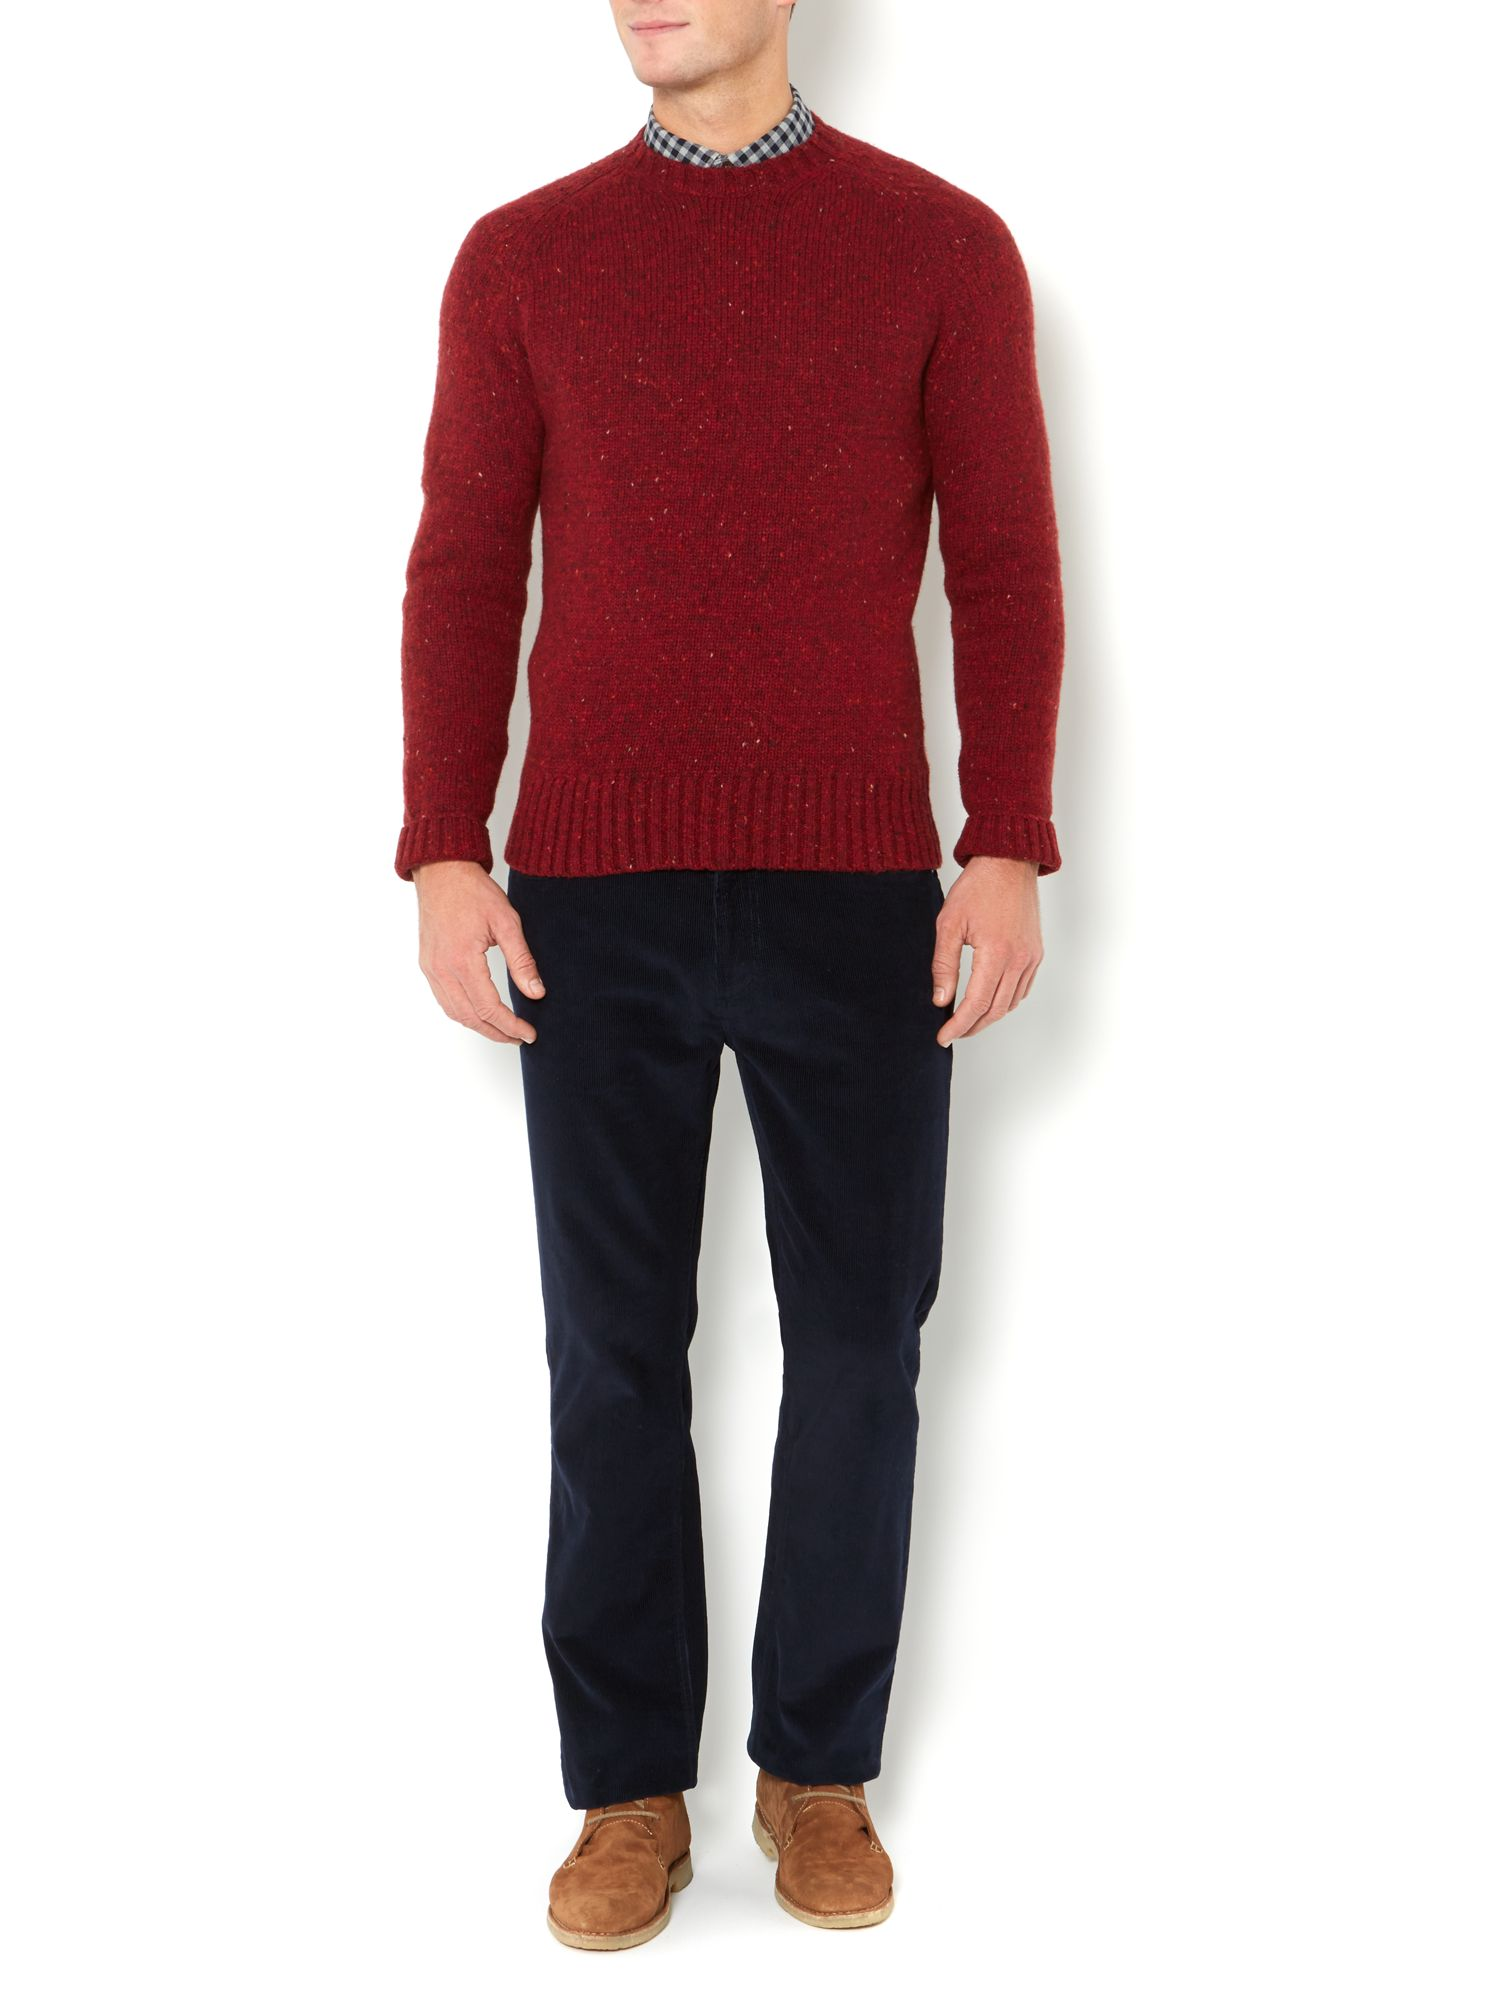 Stormcloud crew knitted jumper